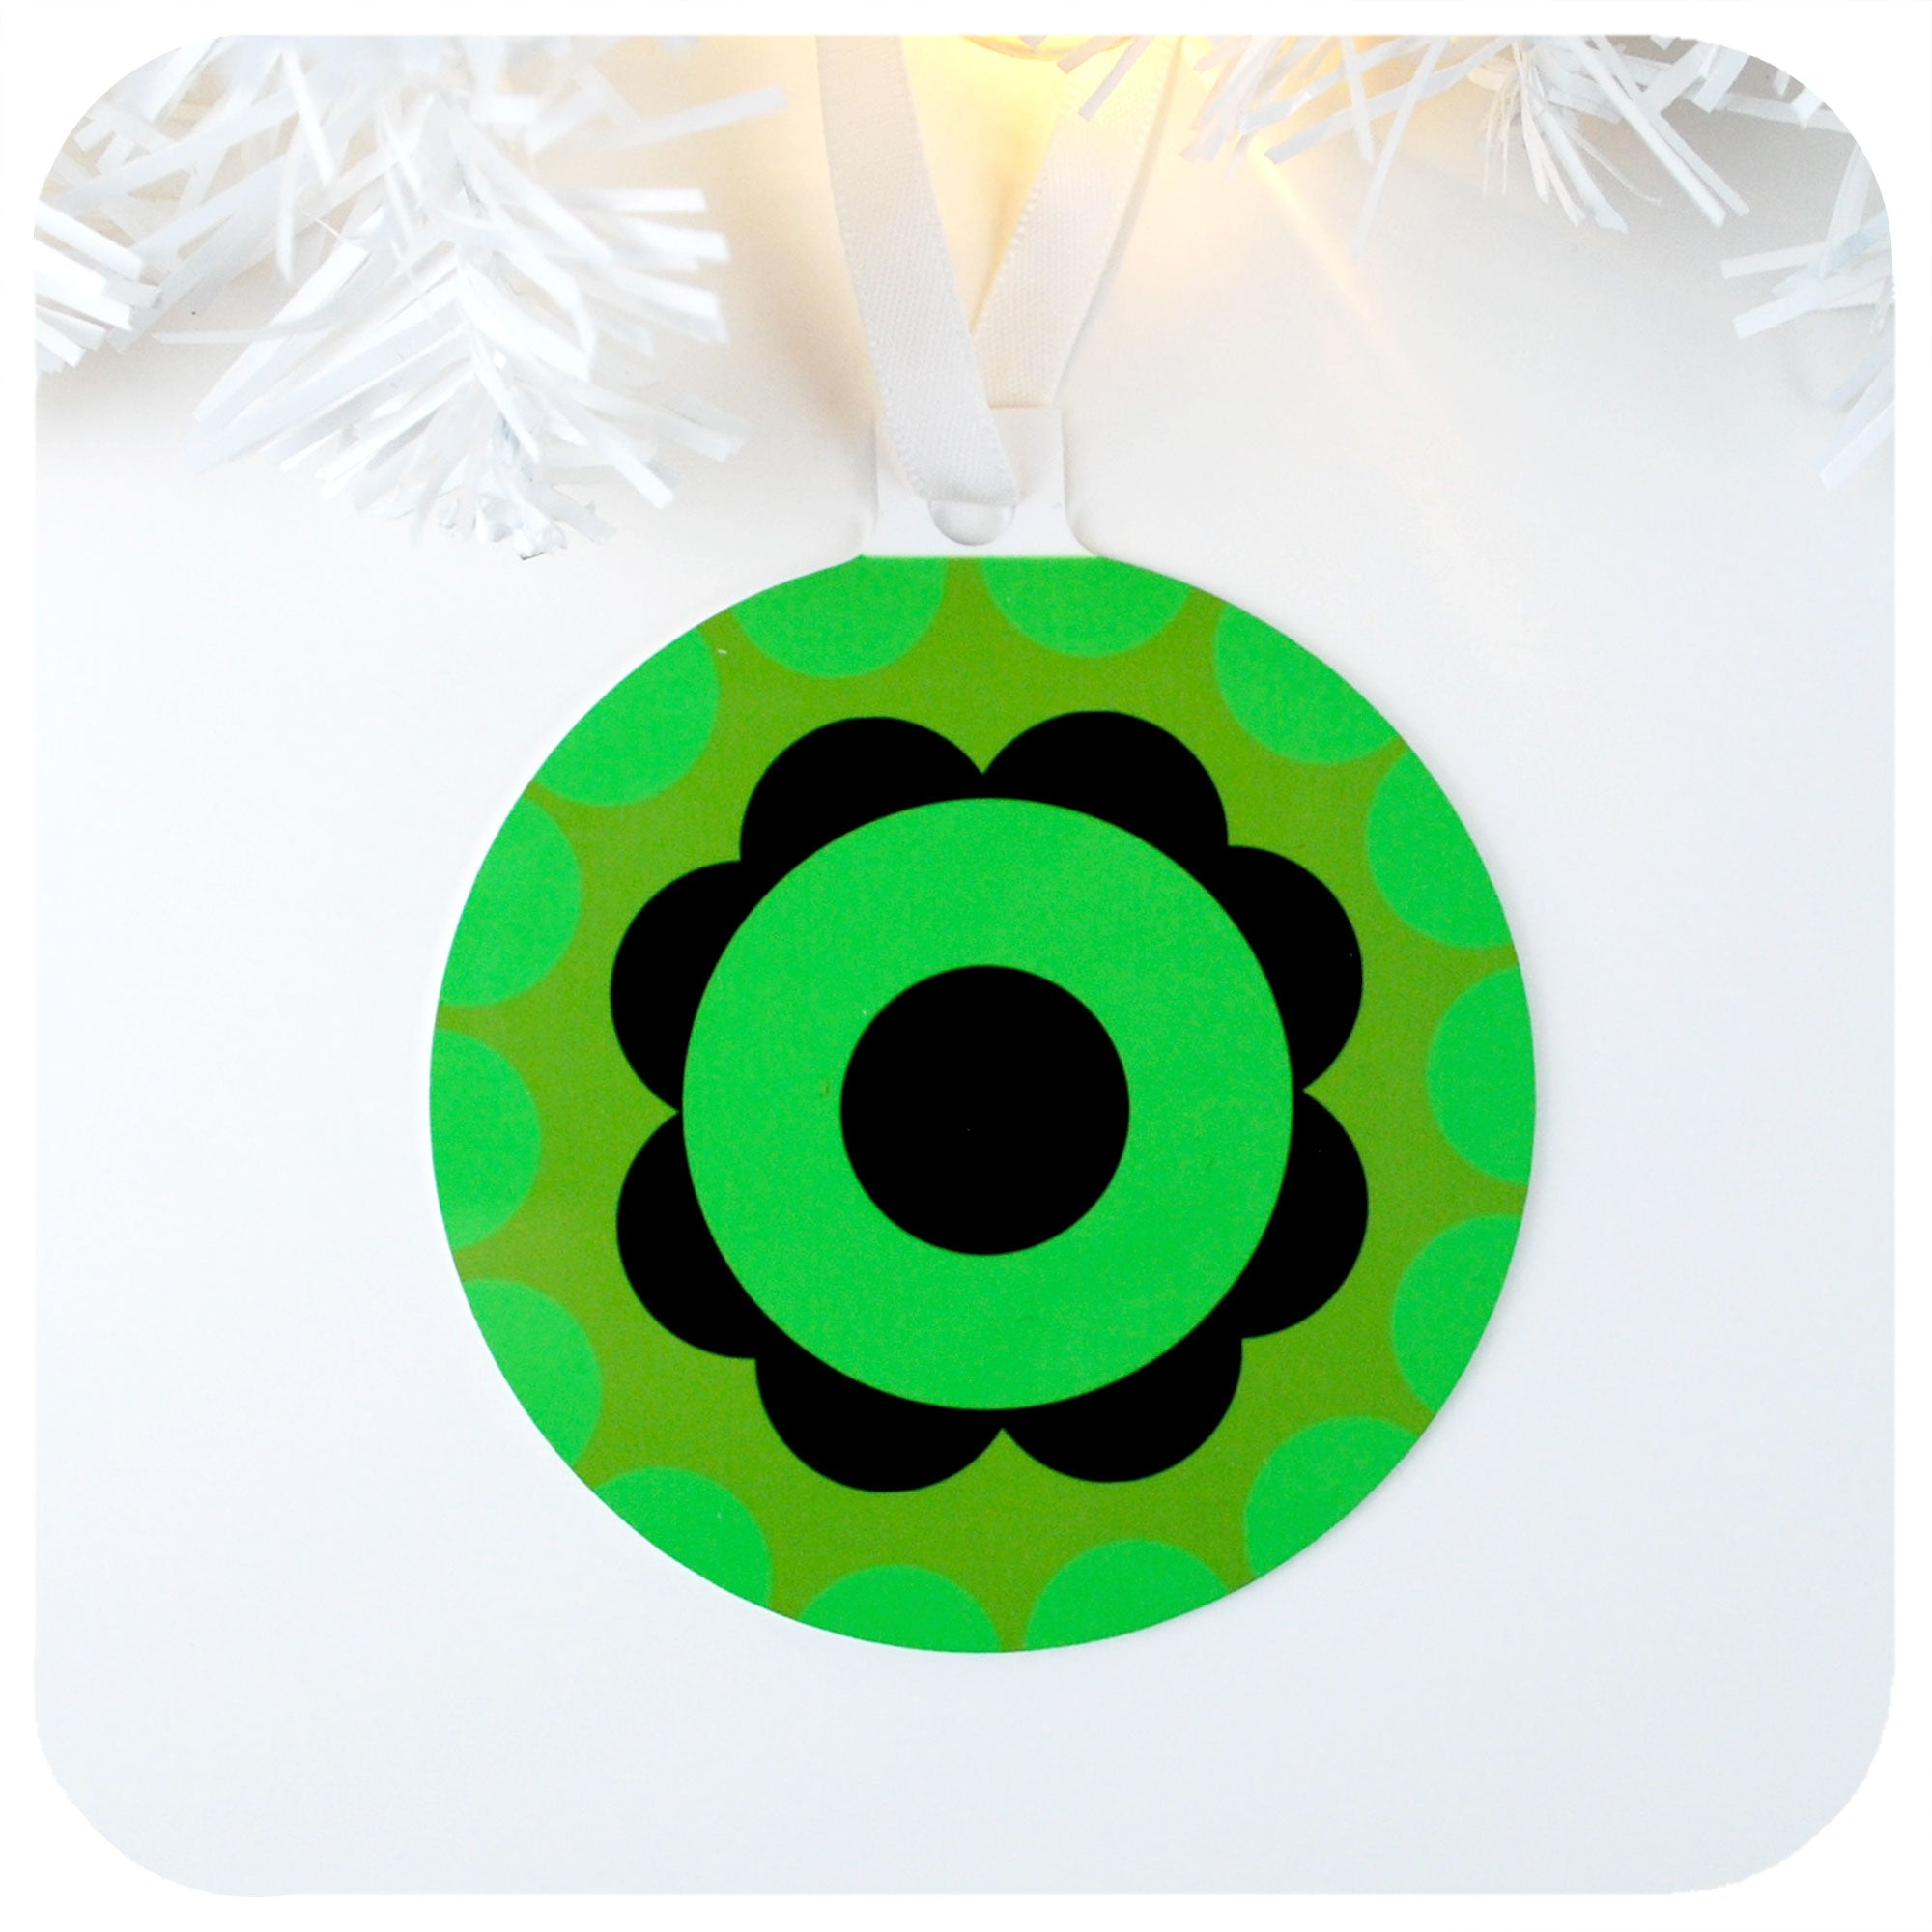 1970s style Christmas Tree Decoration, Two tone green Bauble | The Inkabilly Emporium